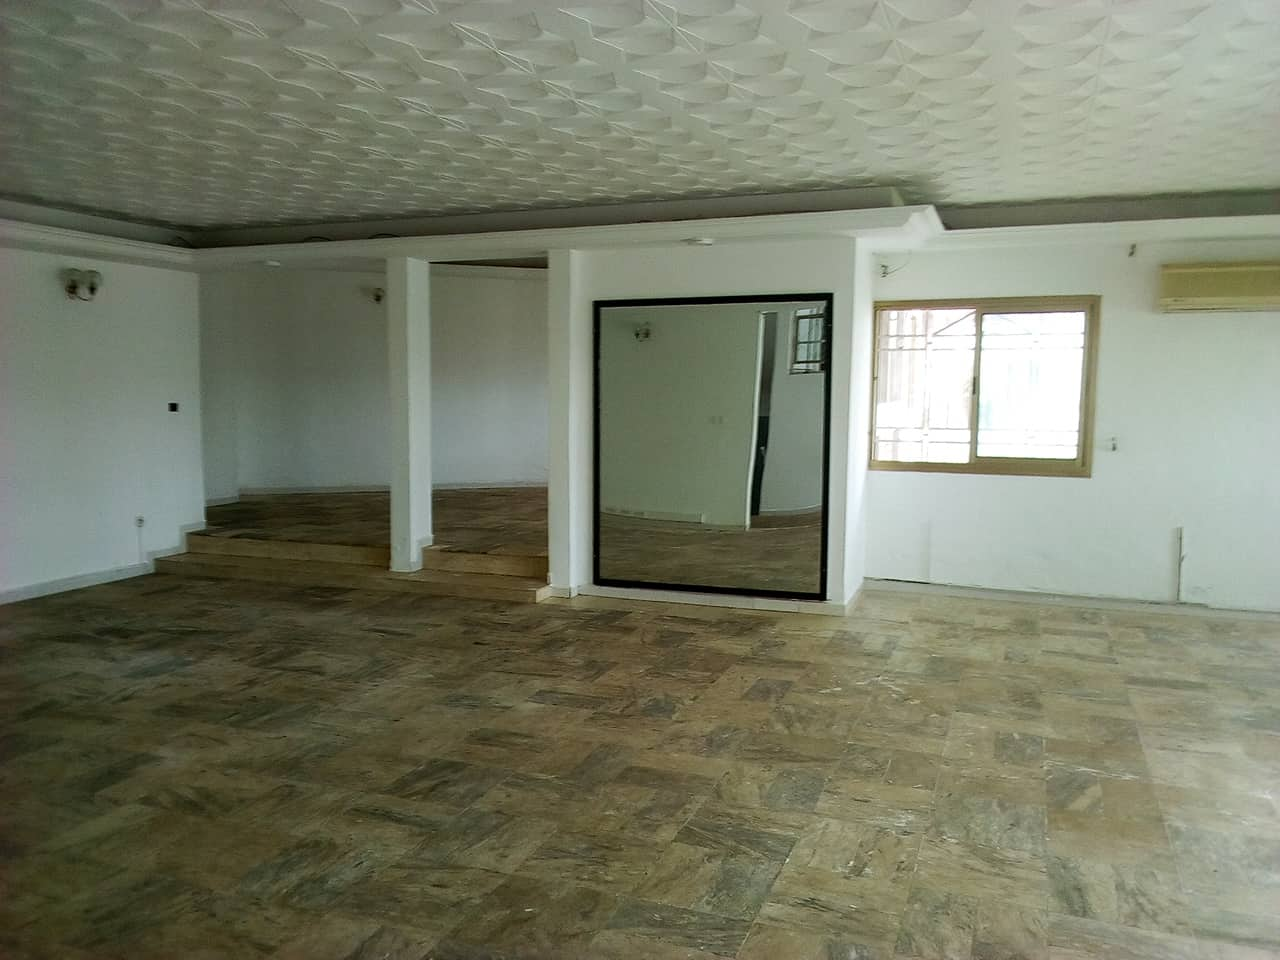 House (Villa) to rent - Yaoundé, Bastos, pas loin de lonel - 1 living room(s), 6 bedroom(s), 5 bathroom(s) - 1 800 000 FCFA / month